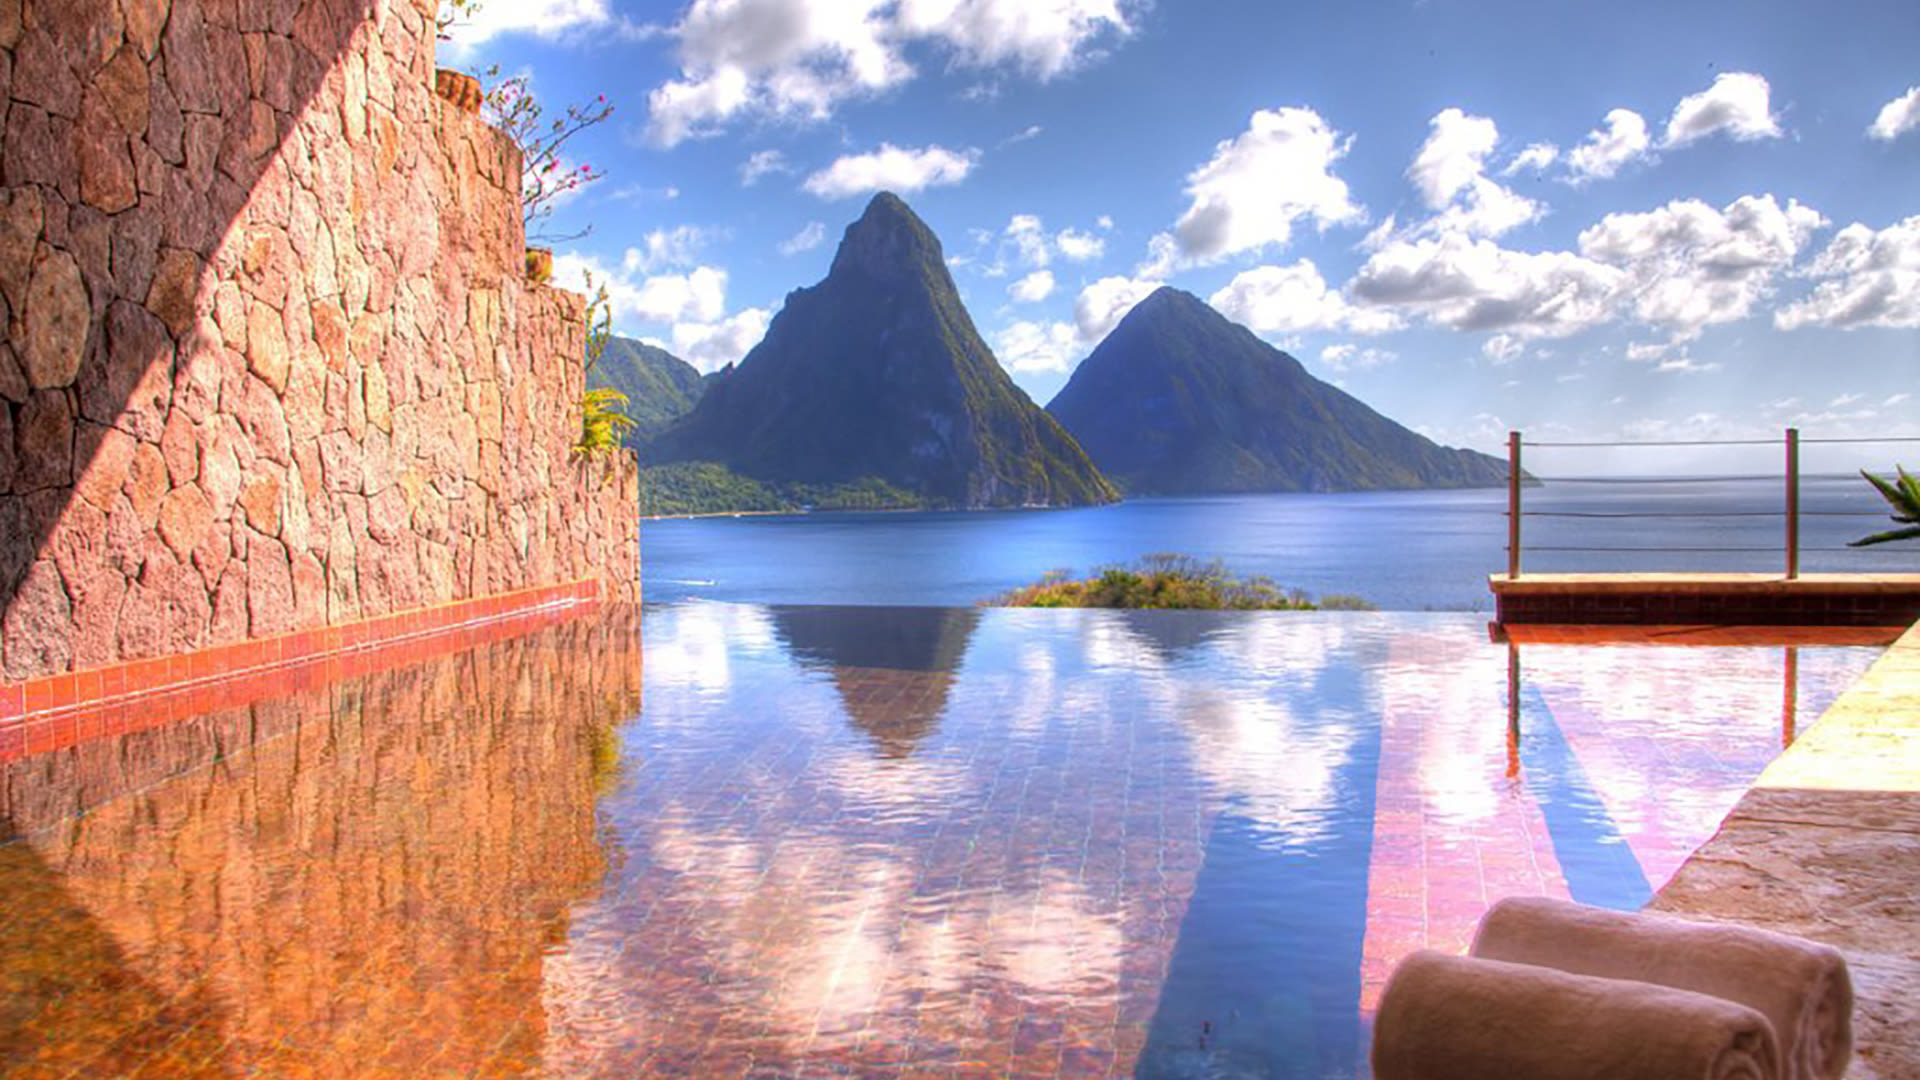 a boat sitting on top of a mountain: Holiday Getaways To Surprise Your Partner With